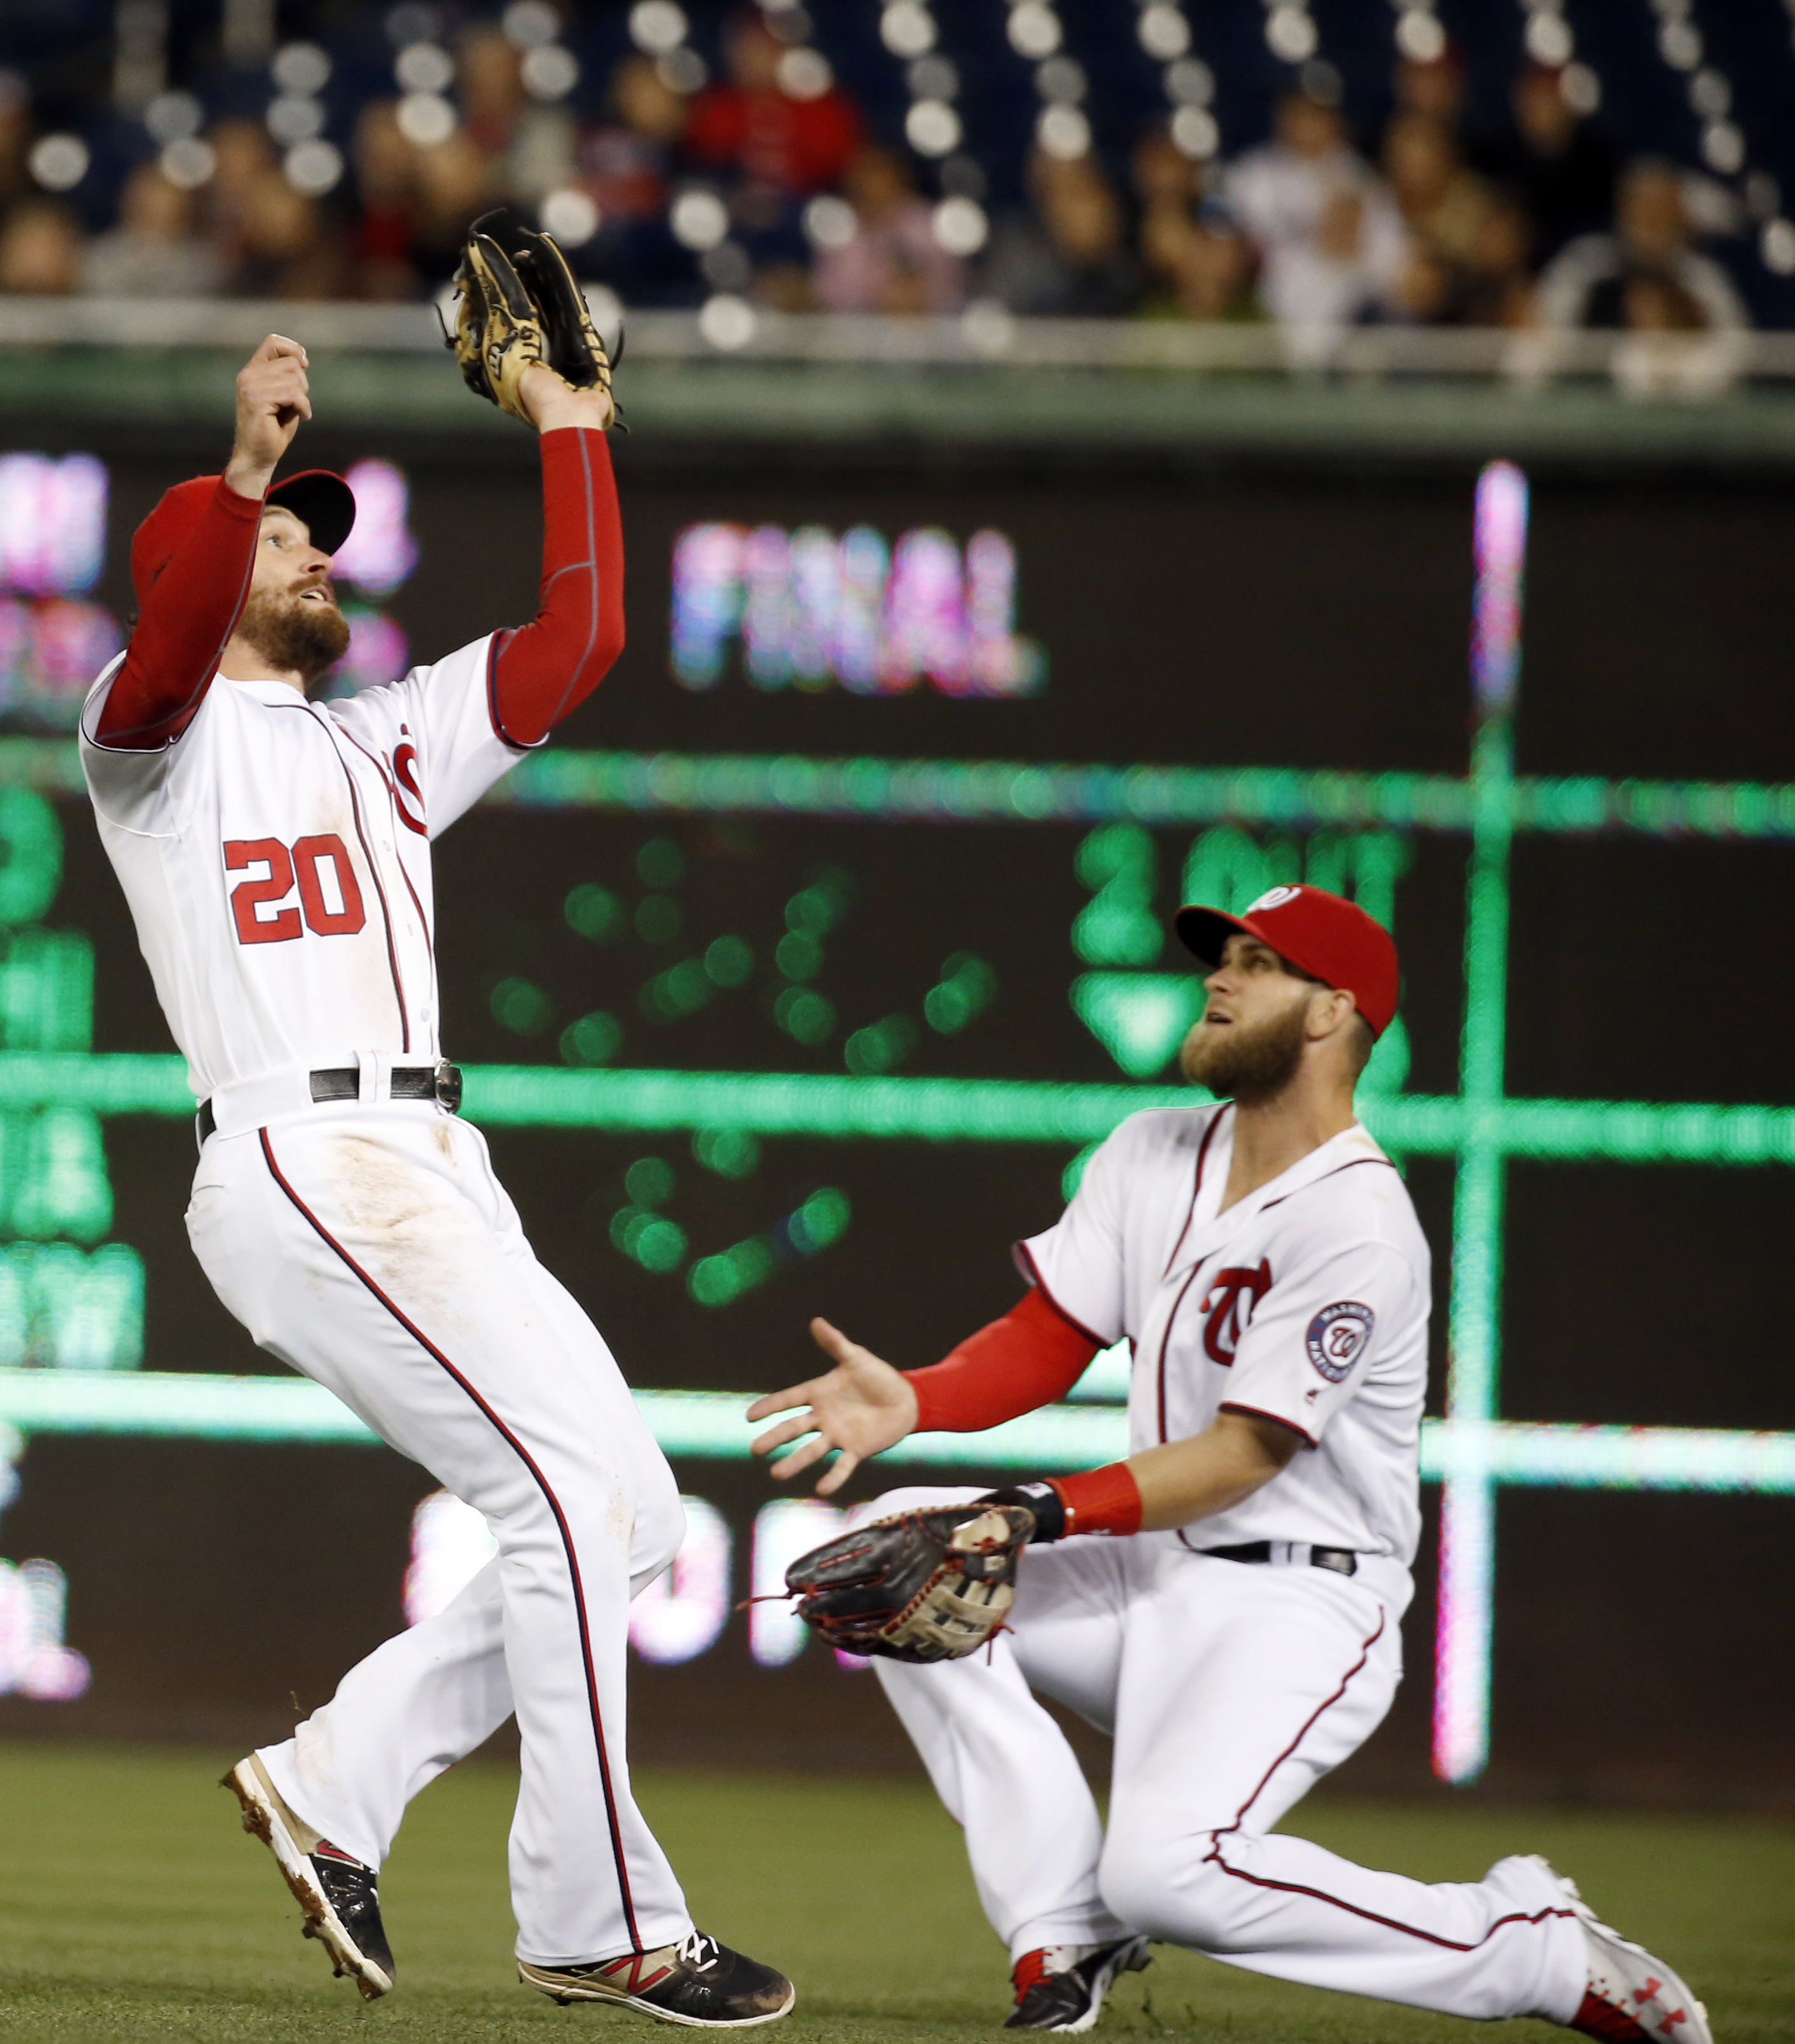 Washington Nationals second baseman Daniel Murphy (20) catches a ball hit by Atlanta Braves' Jhoulys Chacin, with Nationals right fielder Bryce Harper (34) nearby, during the fifth inning of a baseball game at Nationals Park, Tuesday, April 12, 2016, in W